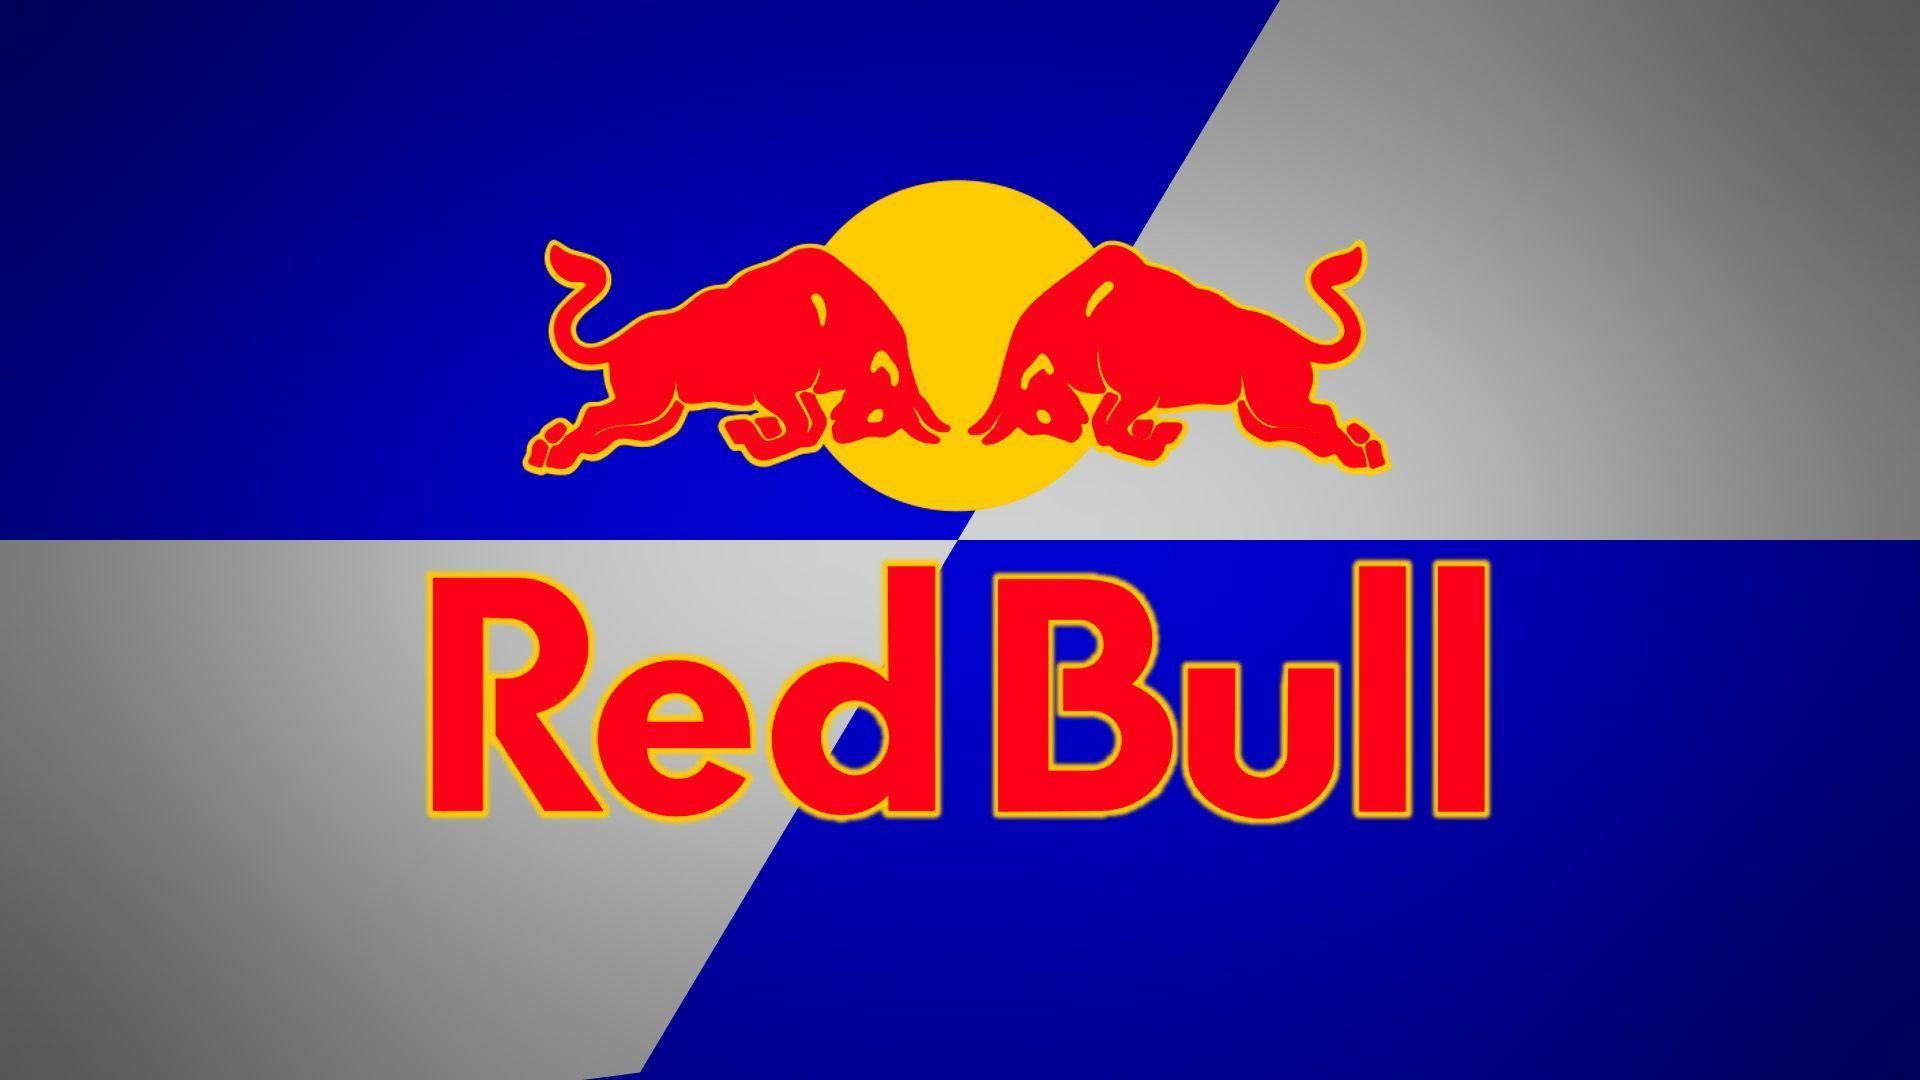 Red Bull Wallpapers.